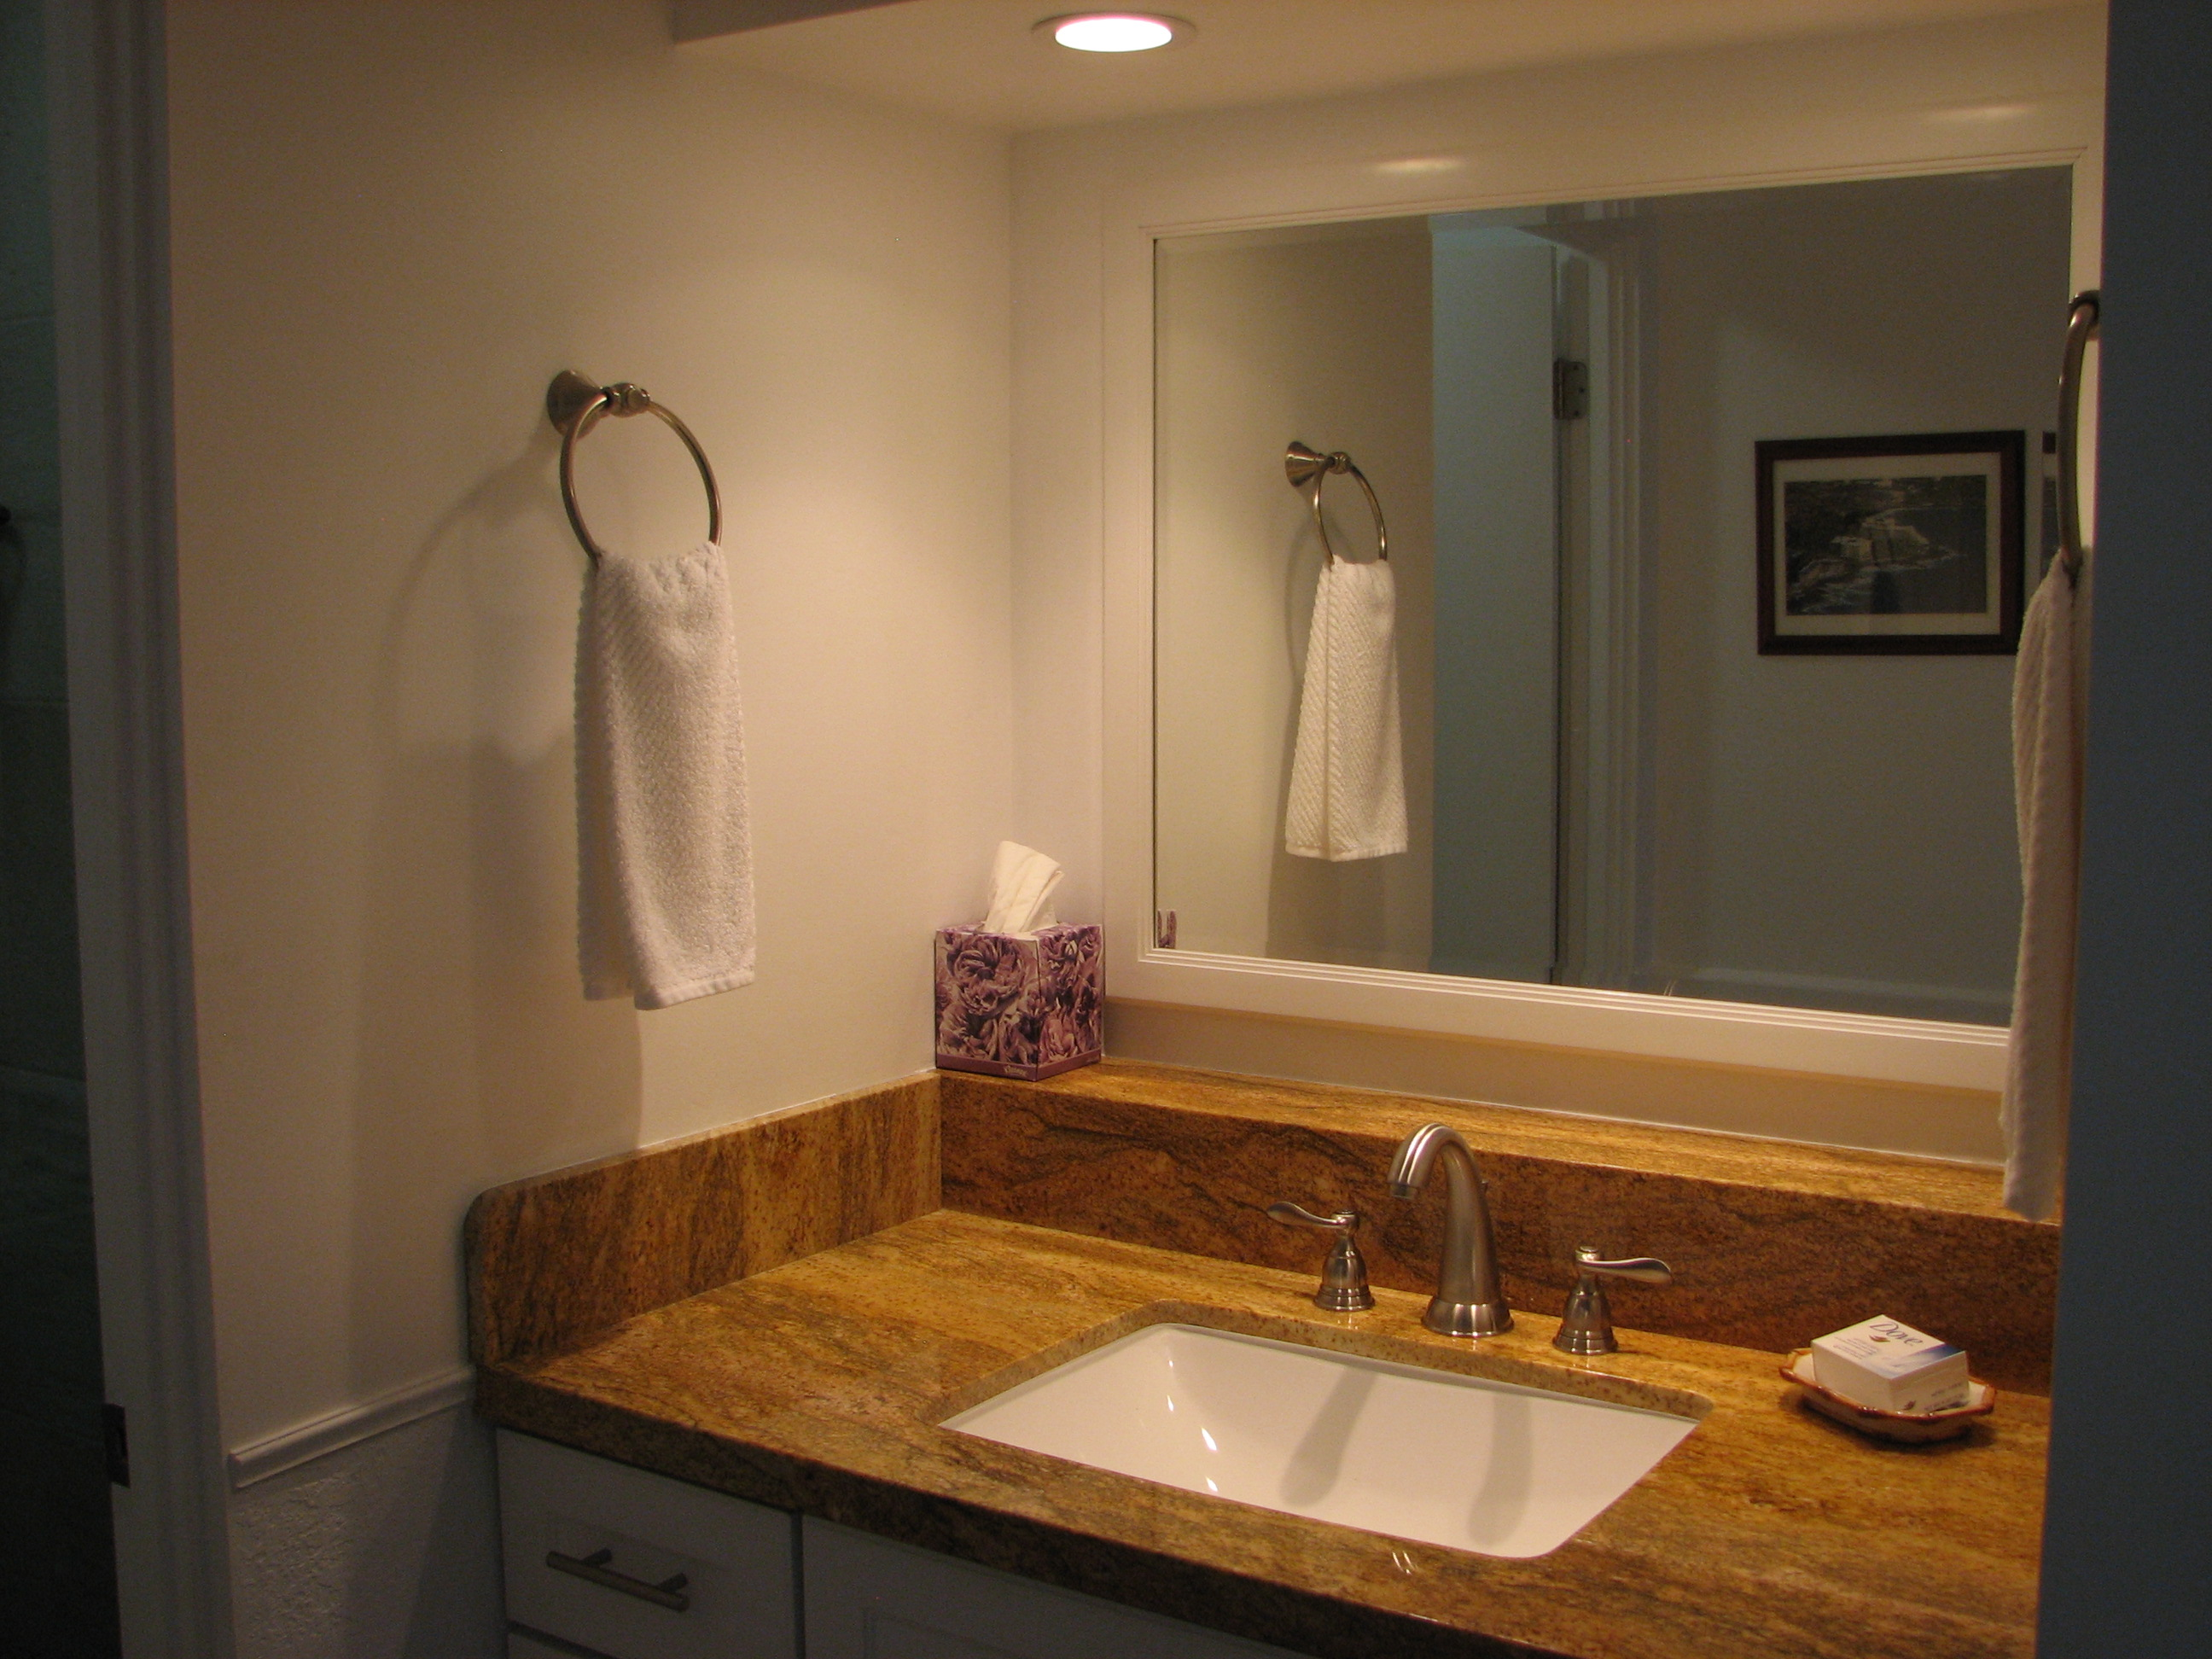 Newly remodeled granite vanity area with lots of storage.